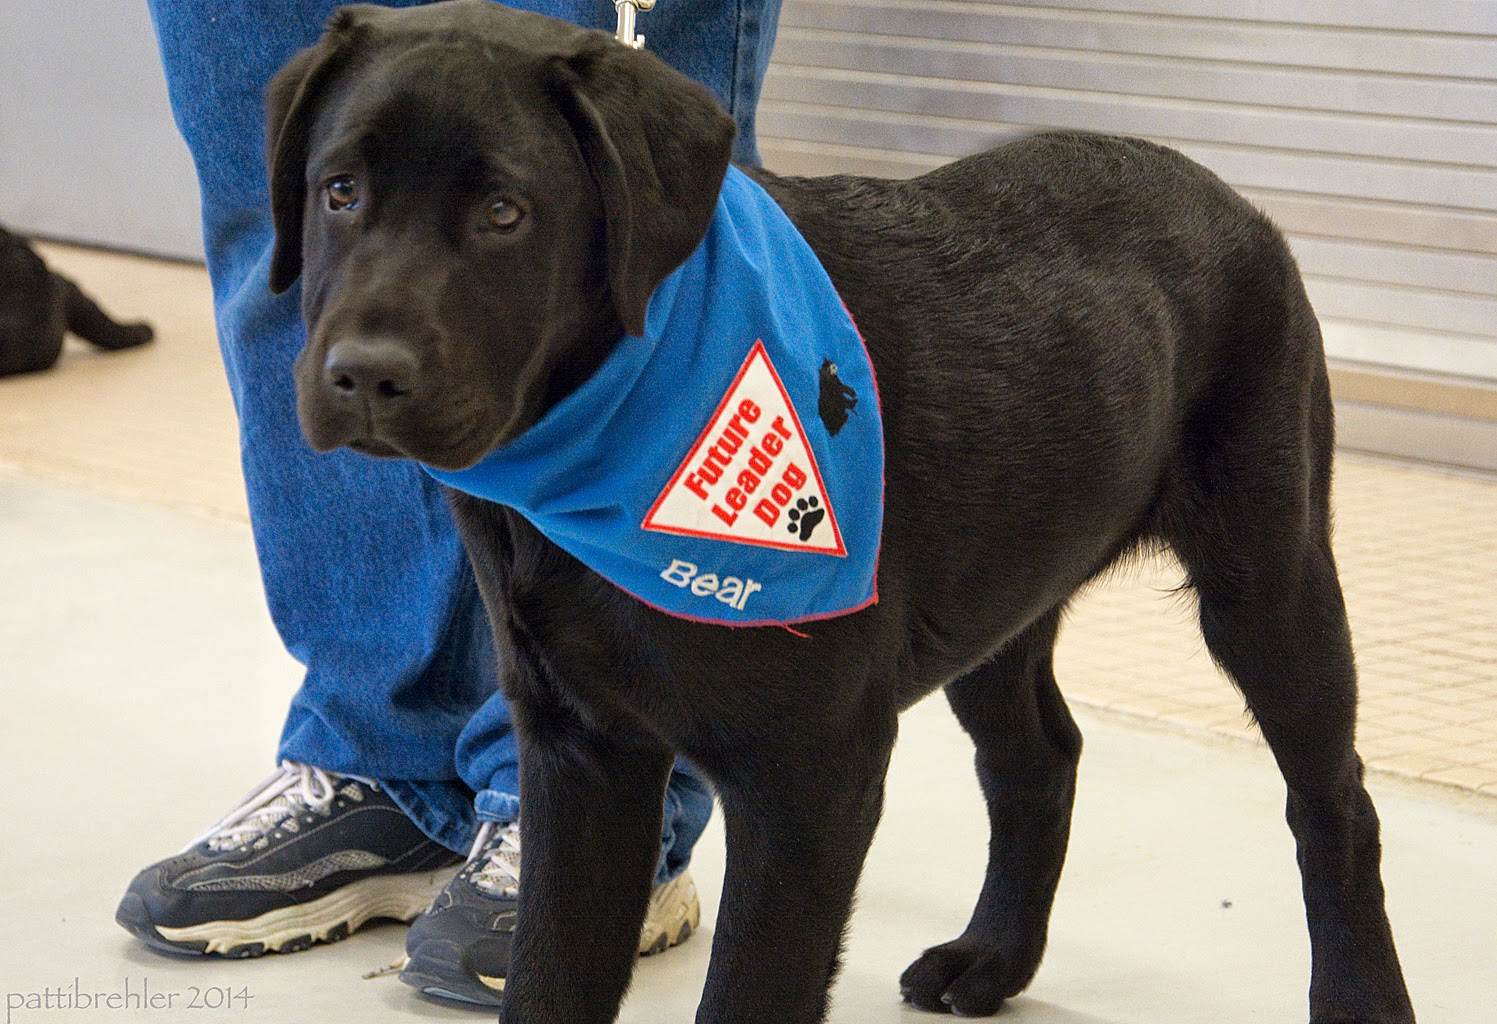 A young black lab puppy is standing next to legs dressed in blue pants. The puppy is wearing the blue Future Leader Dog bandana. The puppy is looking at the camera.